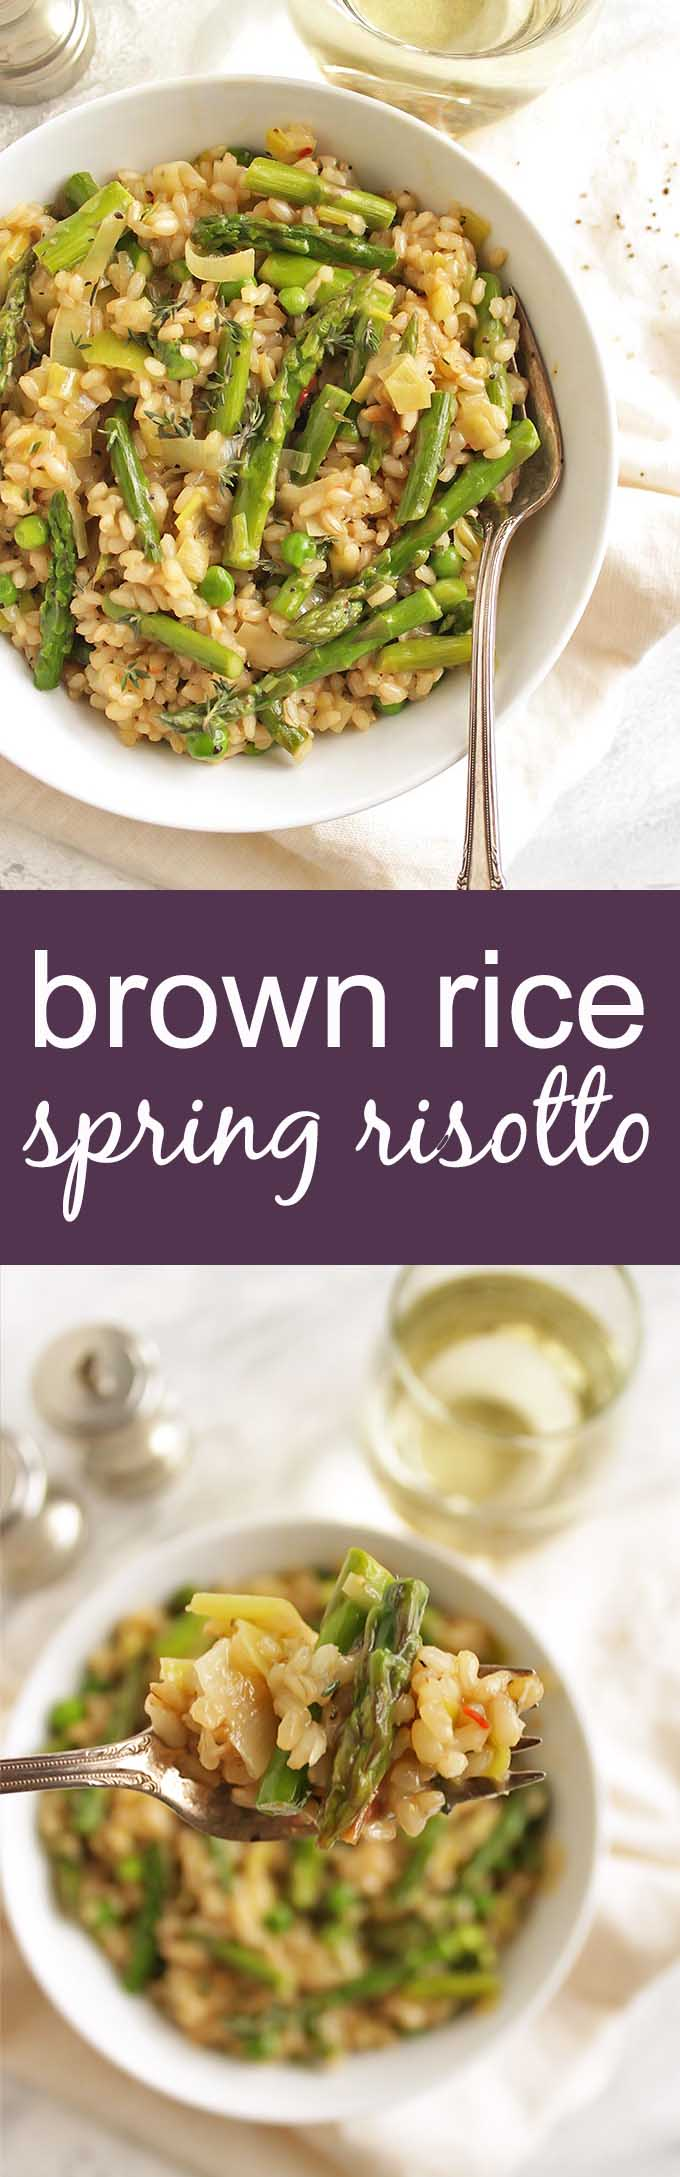 Brown Rice Spring Risotto - Risotto made with brown rice for added health benefits and more texture. This risotto is packed with spring veggies like leeks, asparagus, and peas! This recipe makes a great side dish or add shrimp for a complete meal! Vegetarian/Gluten Free | robustrecipes.com